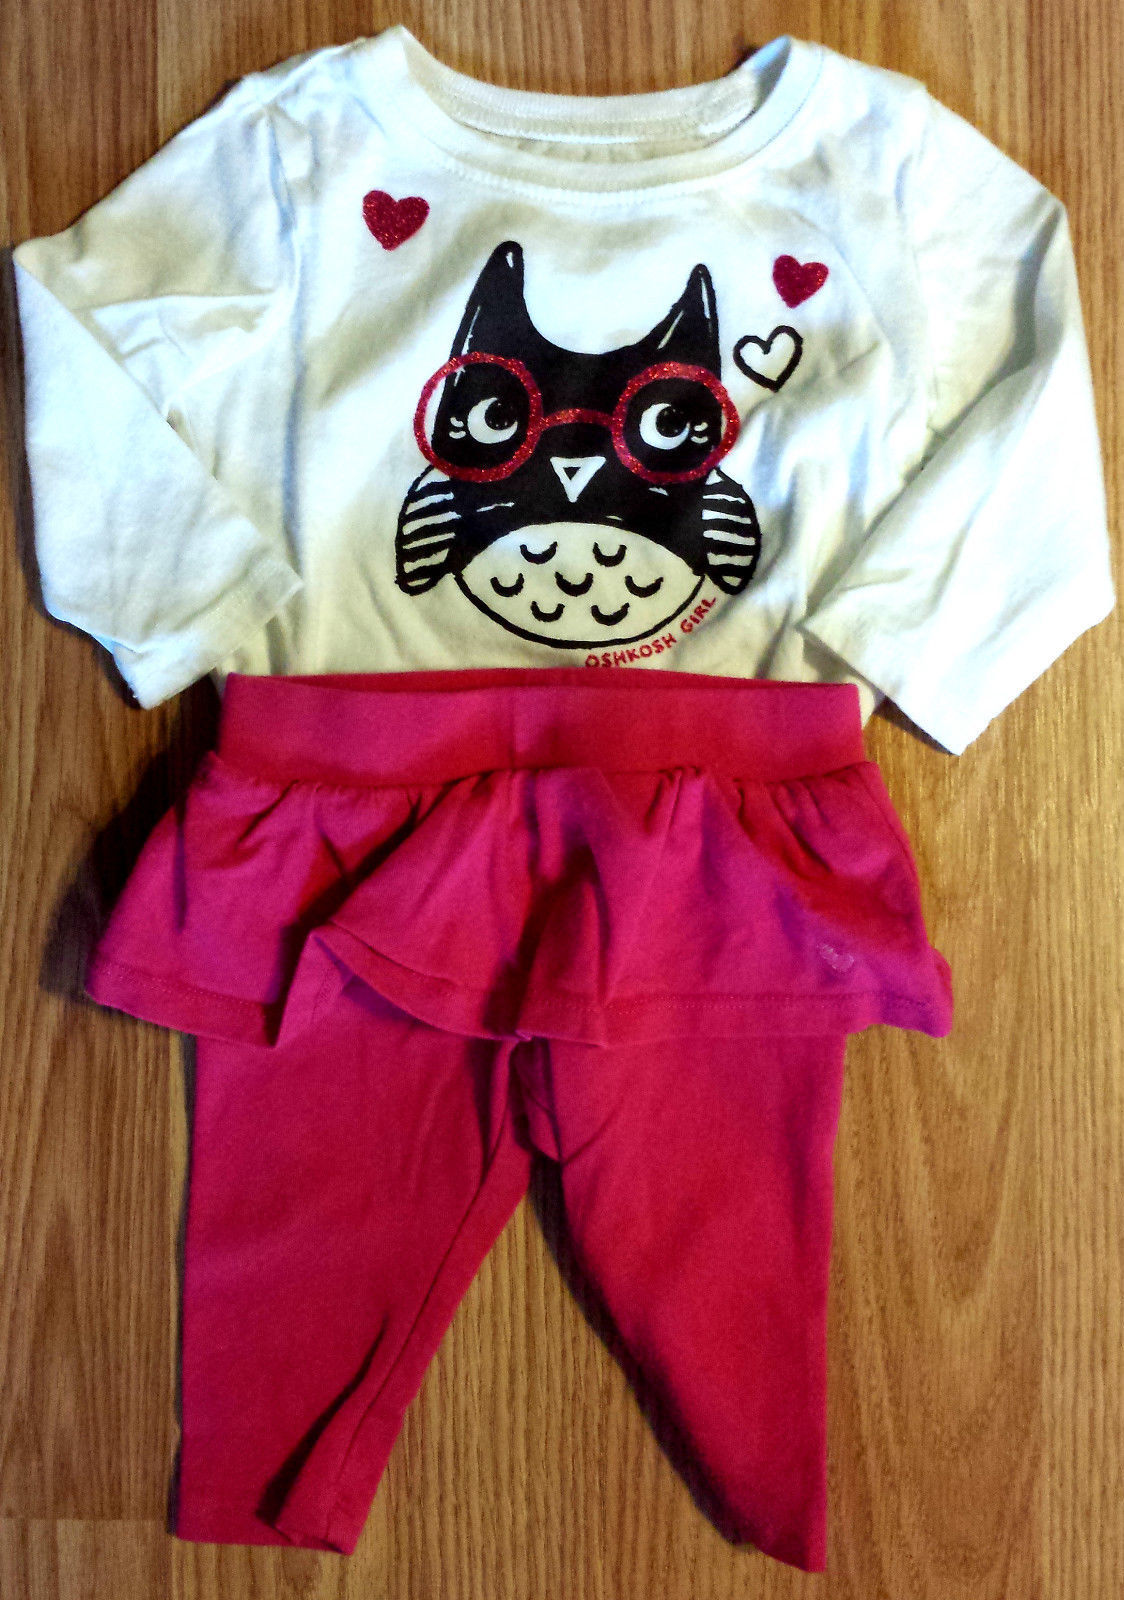 Girl's Size 6 M 3-6 Months Two Pc Osh Kosh White Glitter Owl Top, Skirted Capris